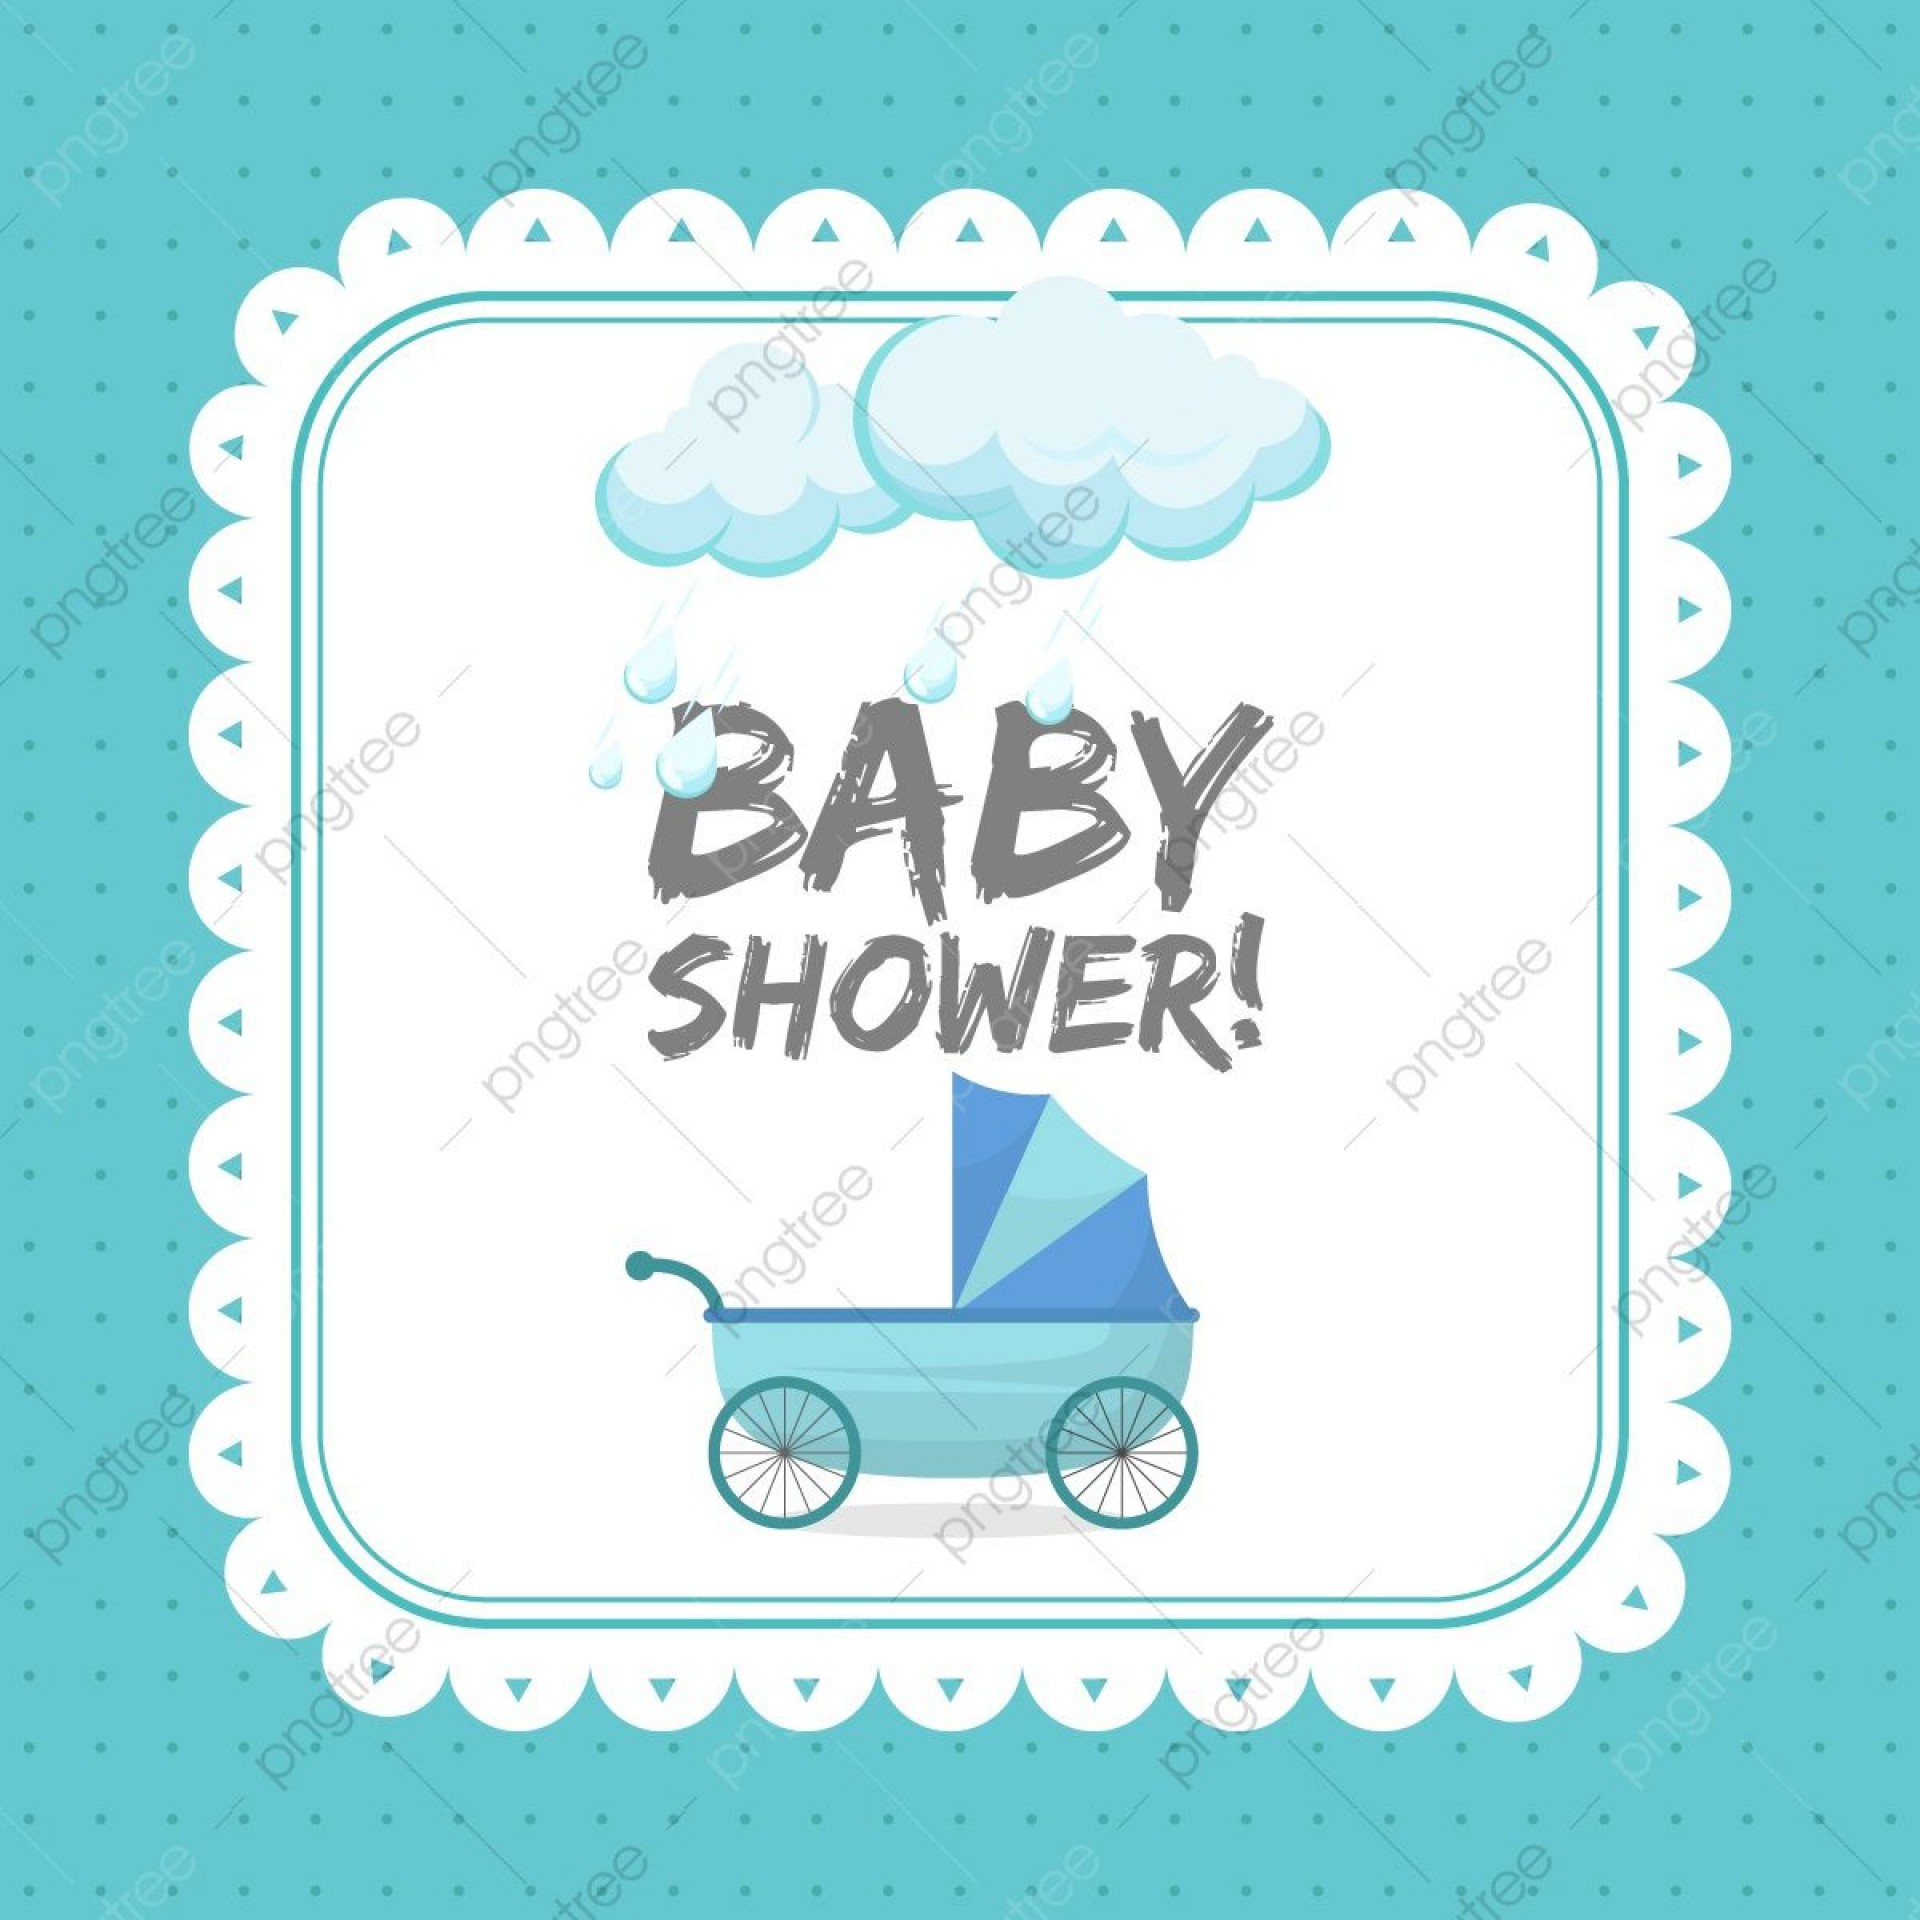 010 Unforgettable Baby Shower Card Template Free Download High Resolution  Indian Invitation1920